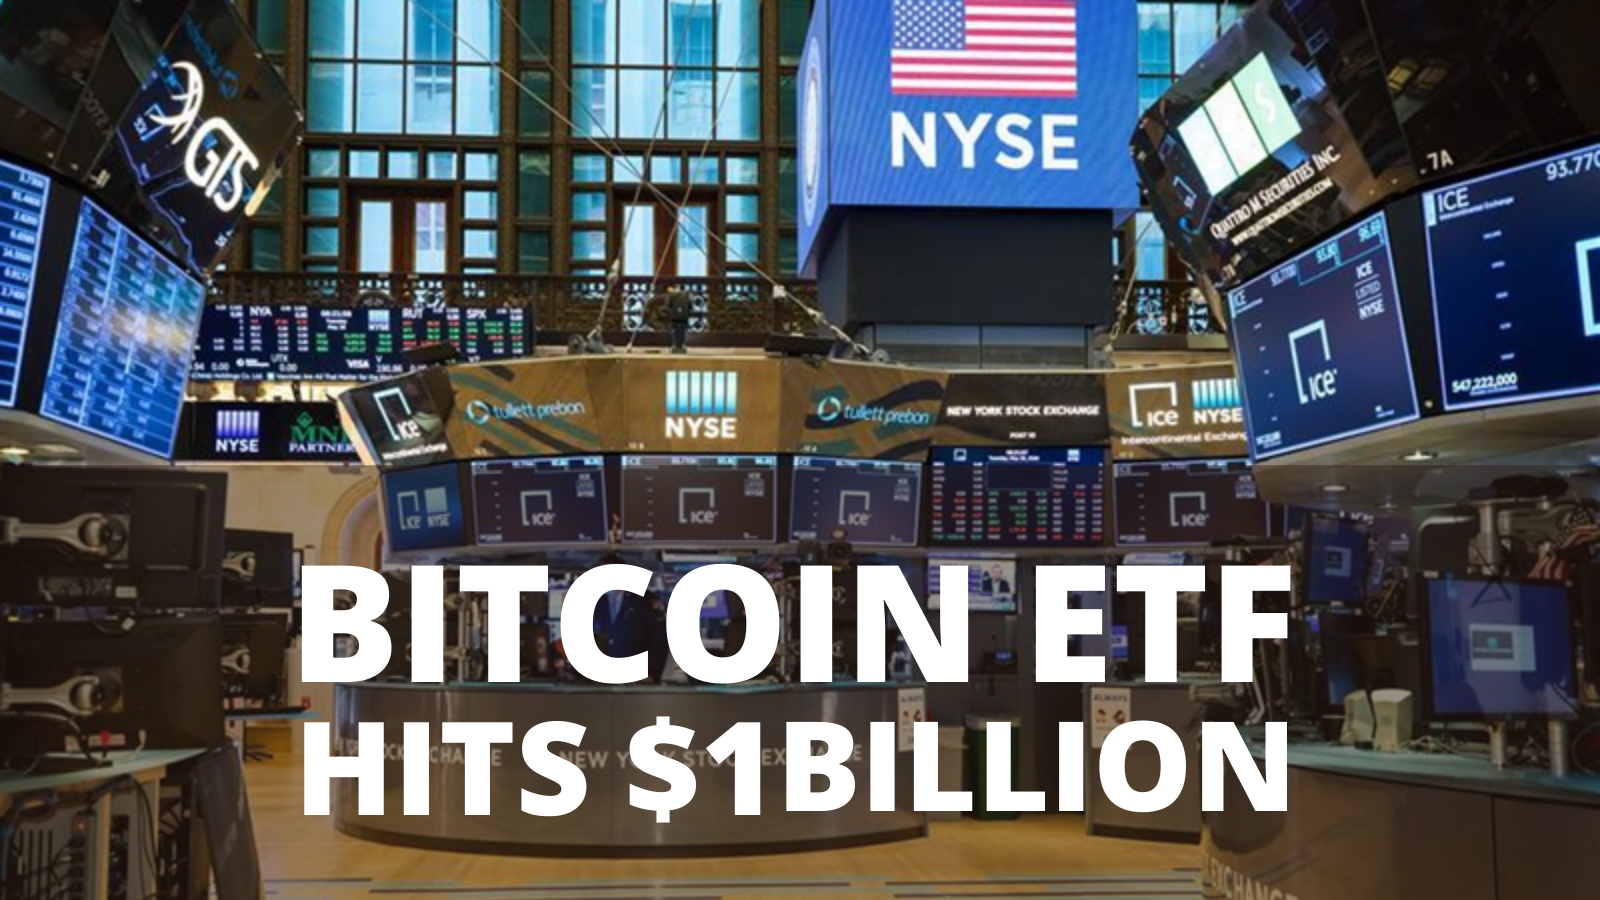 First Bitcoin ETF in NYSE Hits $1 Billion